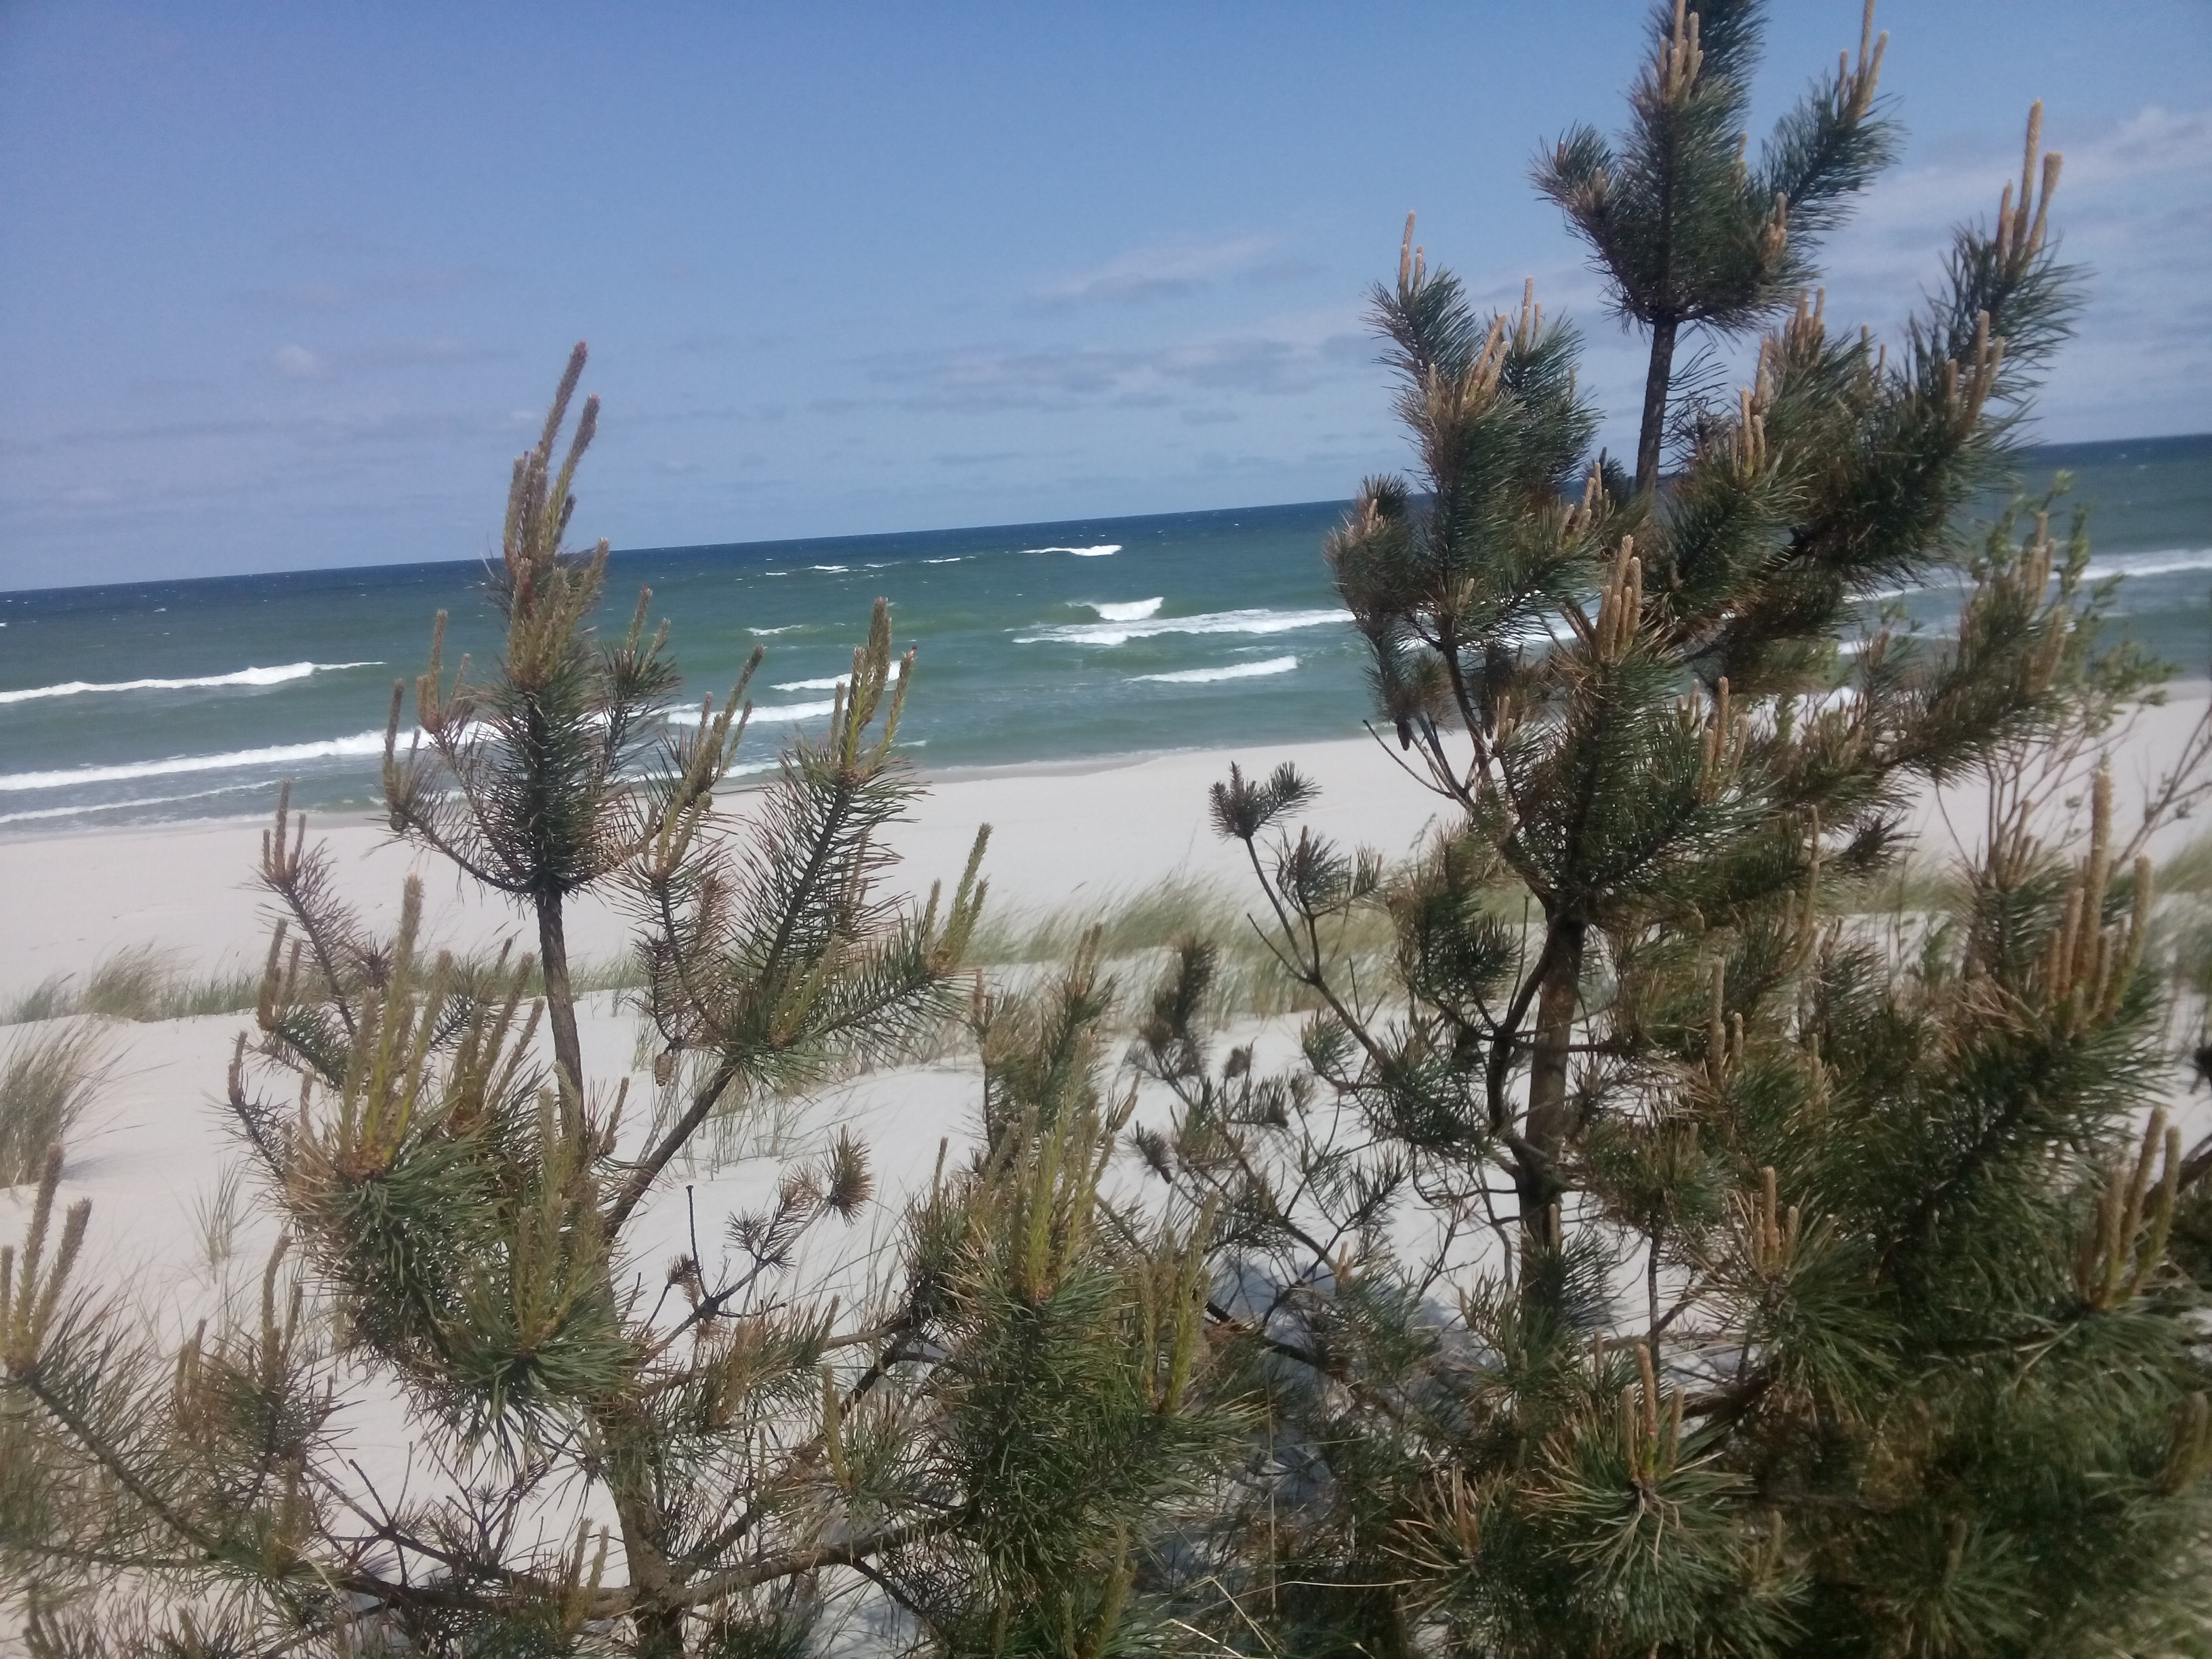 Wispy pine trees in the foreground with beach and sea behind